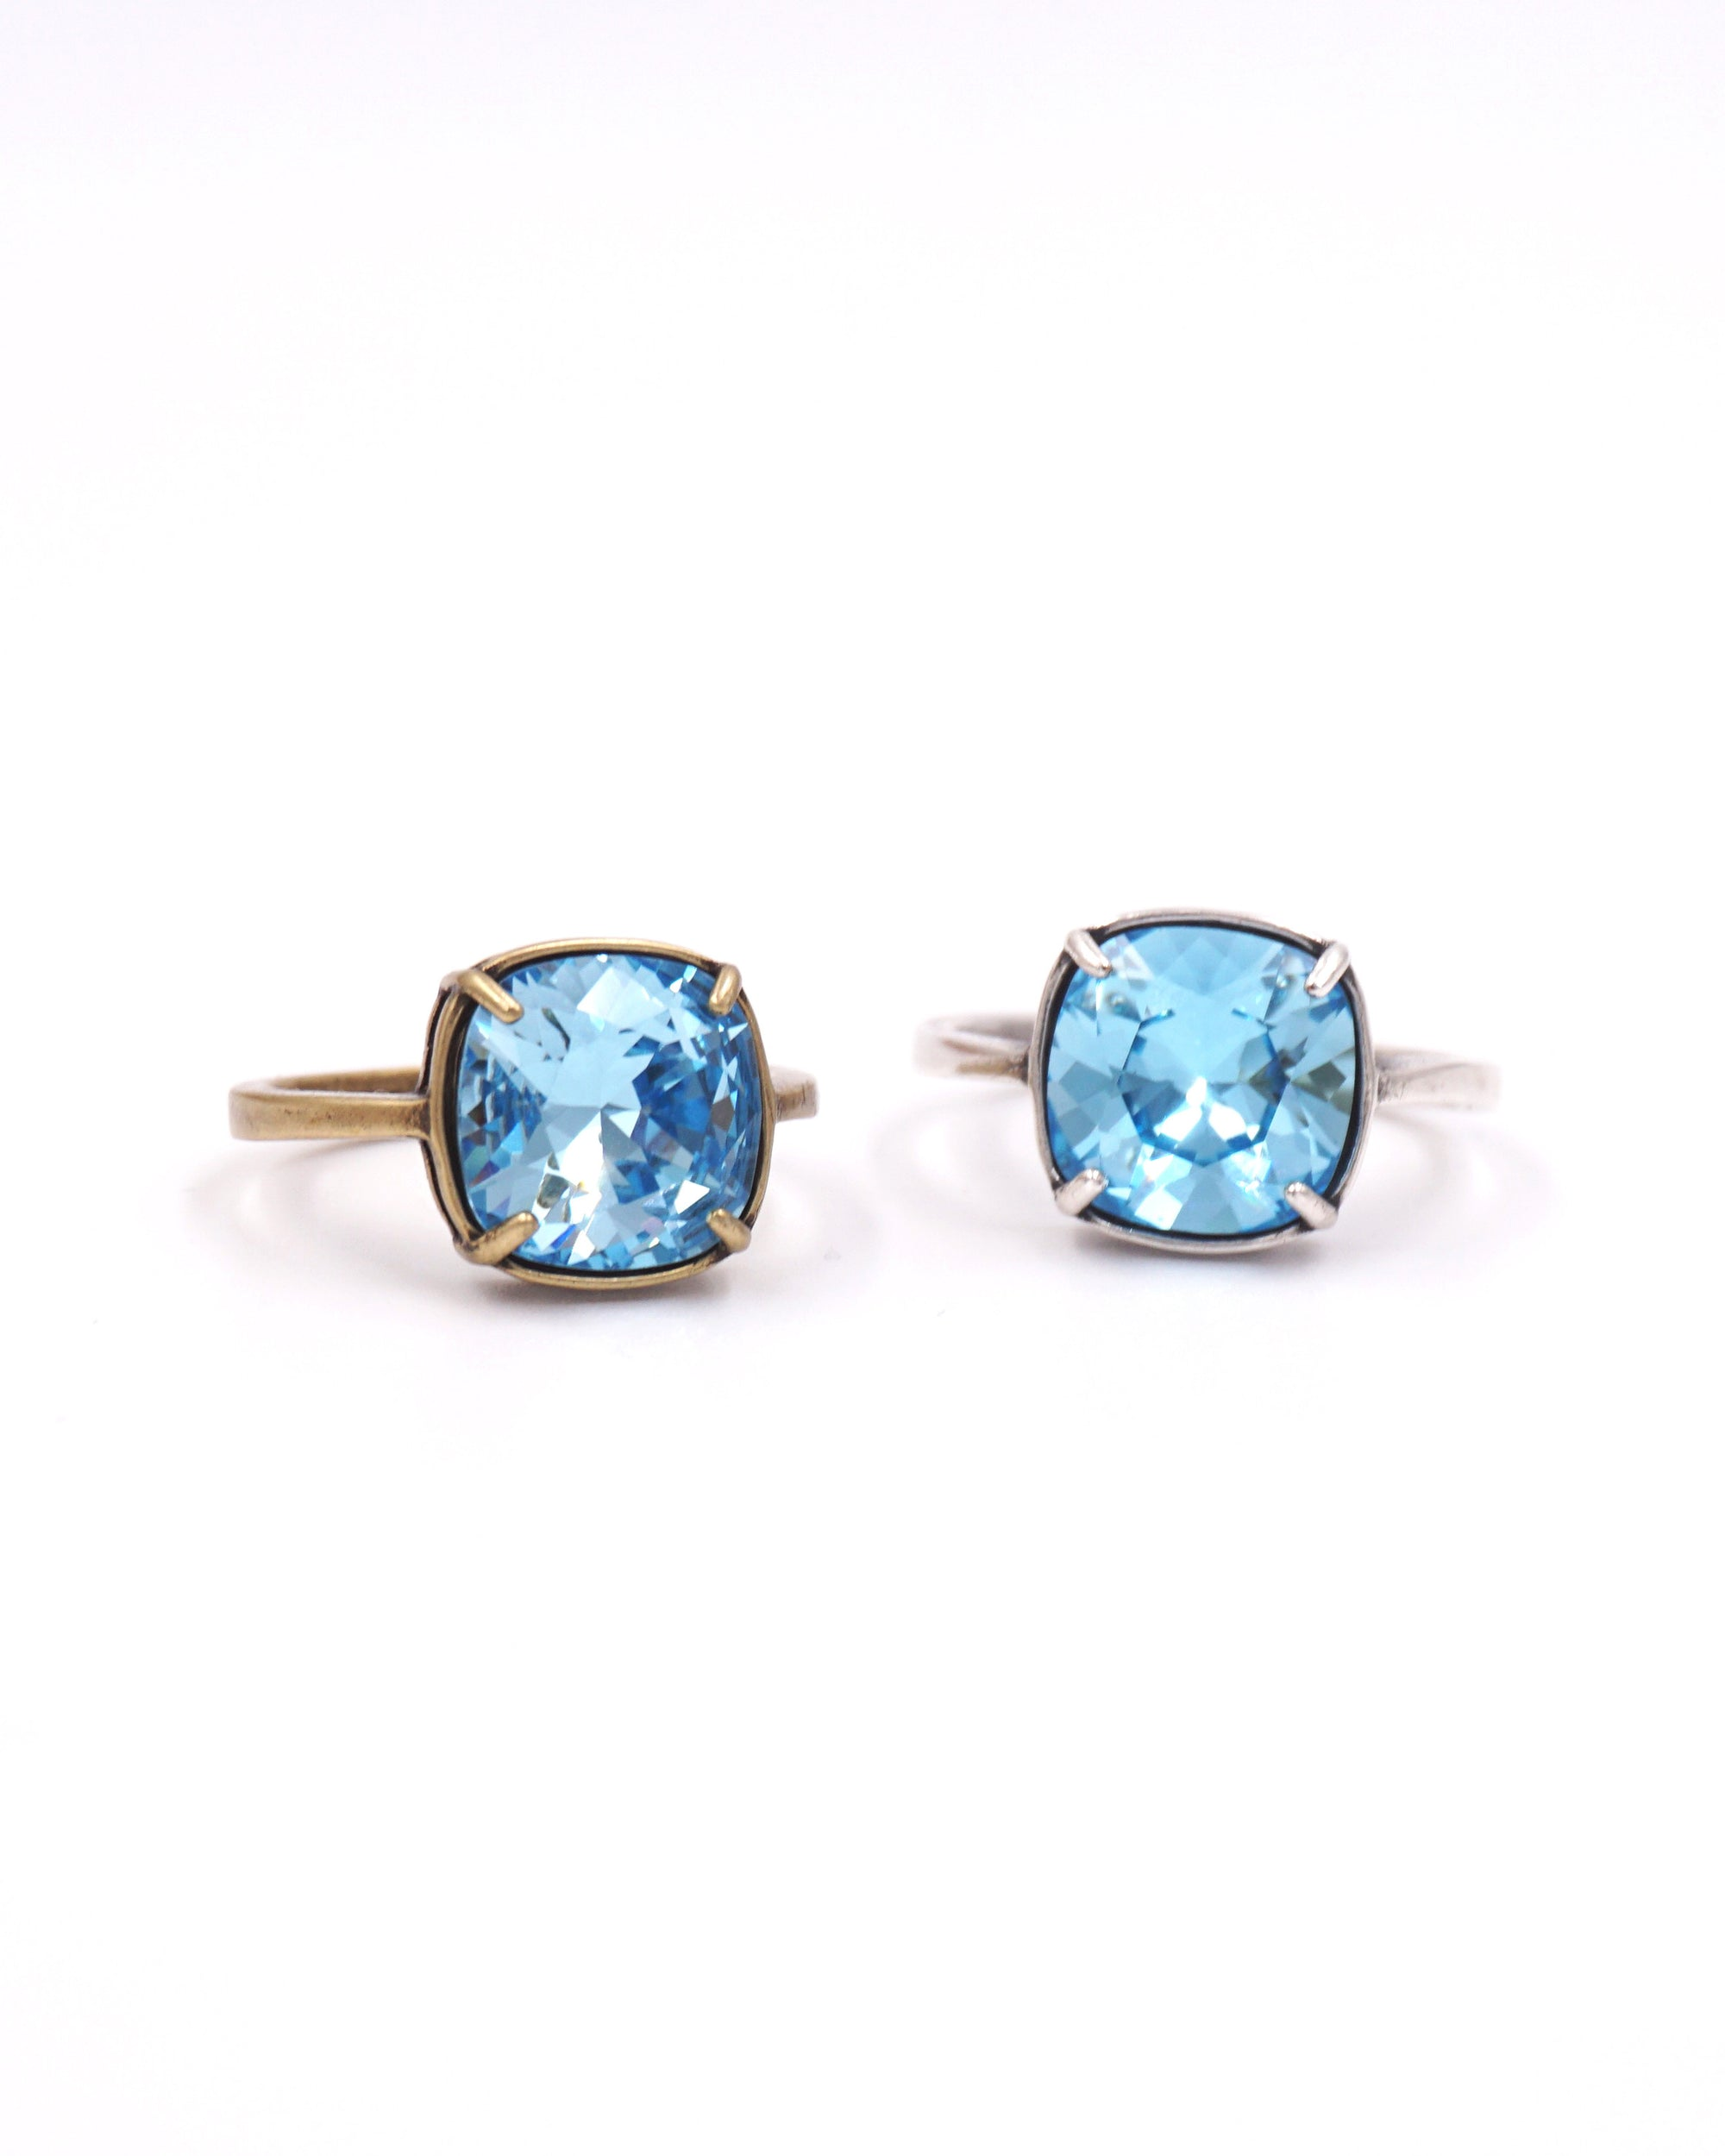 Blue Cocktail Ring | Sparkly Crystal | Fashion Jewelry | Chic & Simple